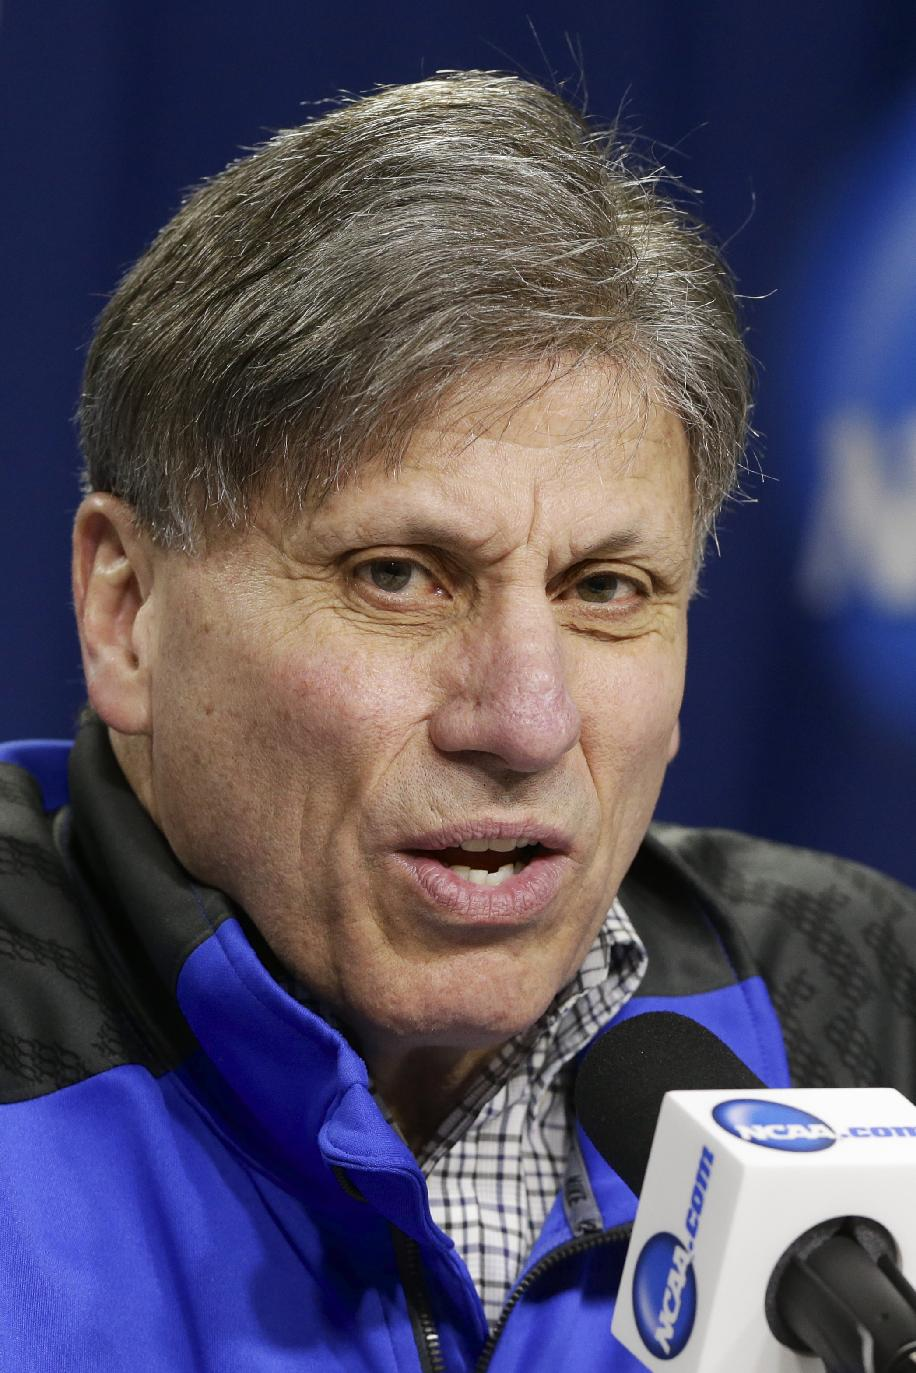 DePaul coach Doug Bruno answers a question during a news conference in Lincoln, Neb., Friday, March 28, 2014. DePaul will play Texas A&M in an NCAA women's basketball tournament regional semifinal on Saturday